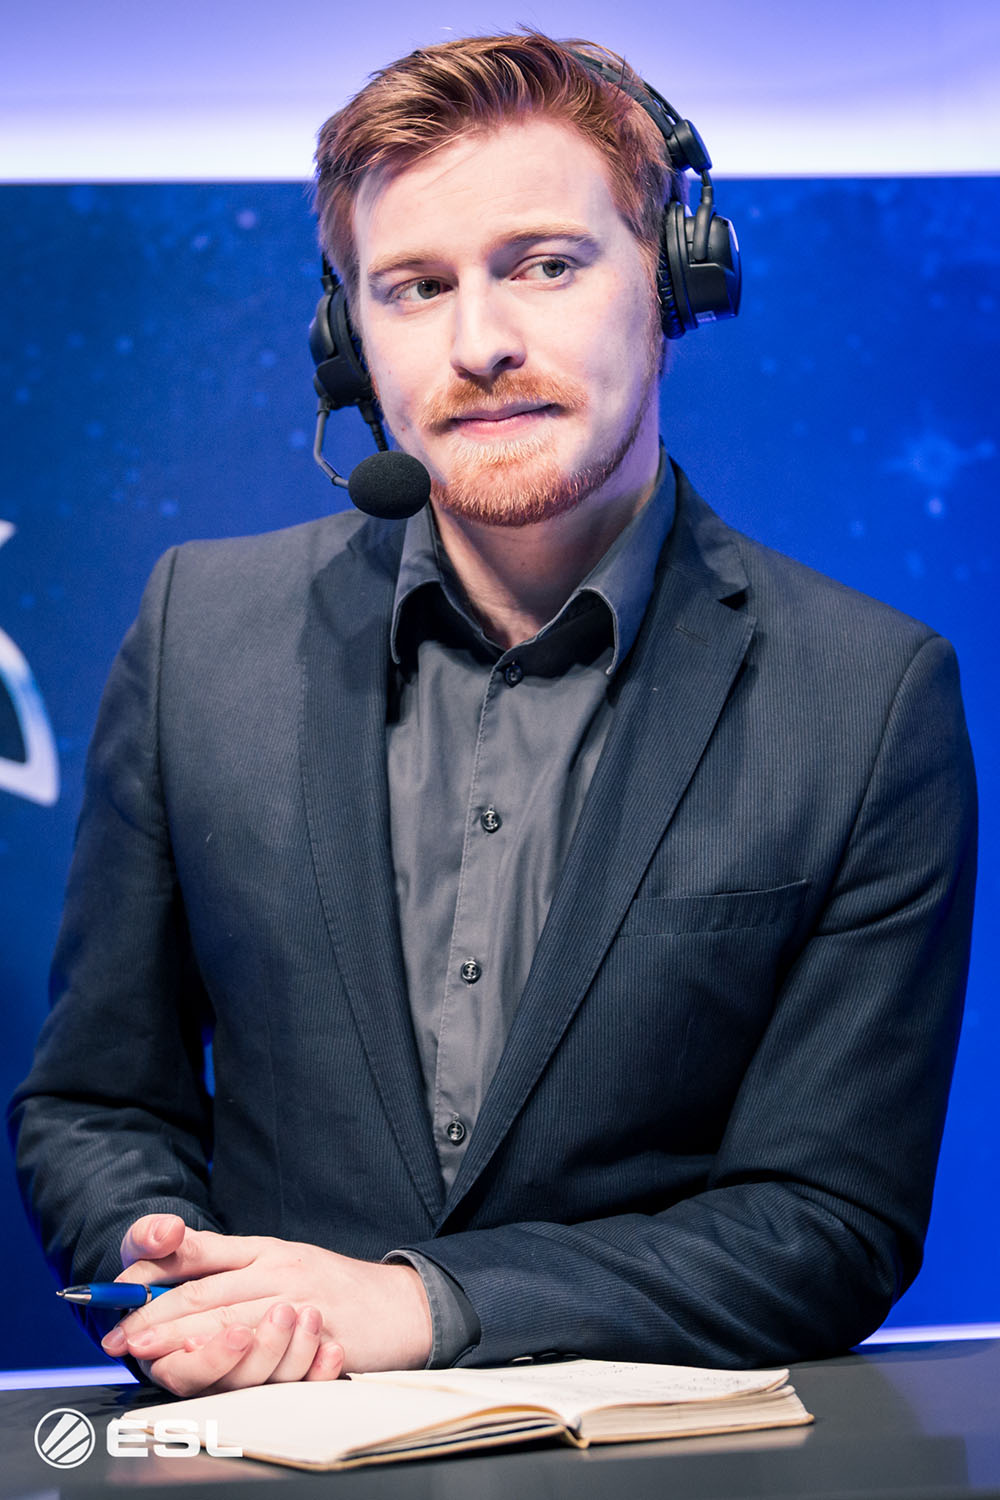 Kaelaris at Gamescom 2016